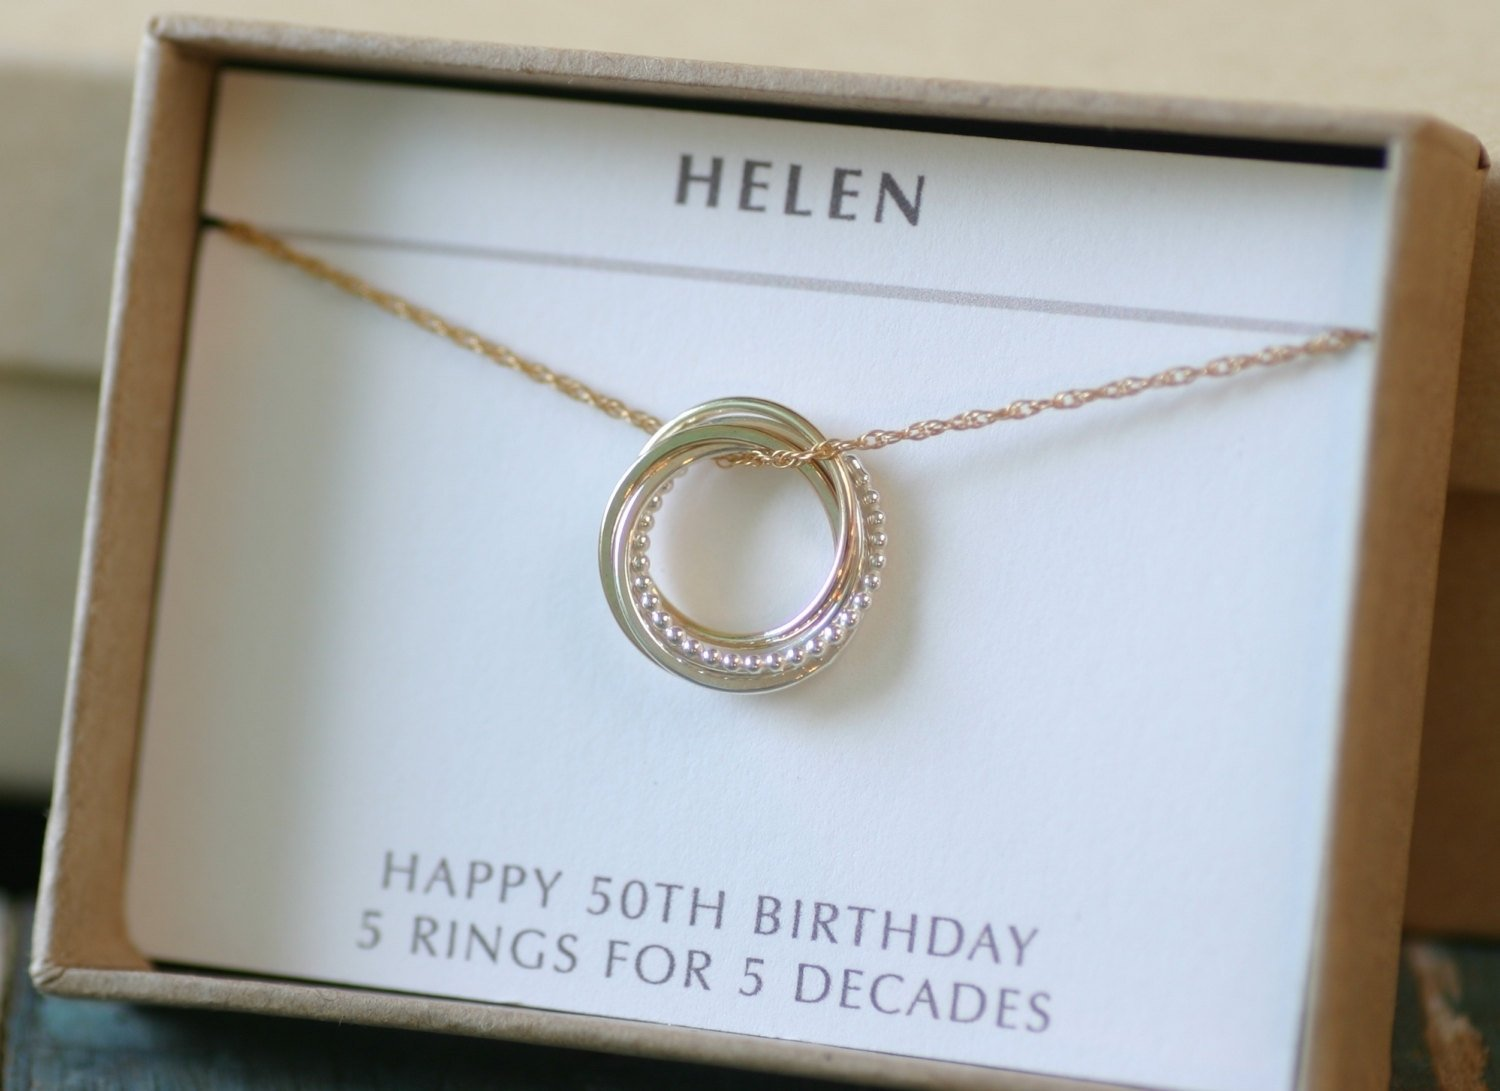 10 Beautiful Ideas For 50Th Birthday Gifts best 50th birthday party ideas for women birthday inspire 50th 4 2020